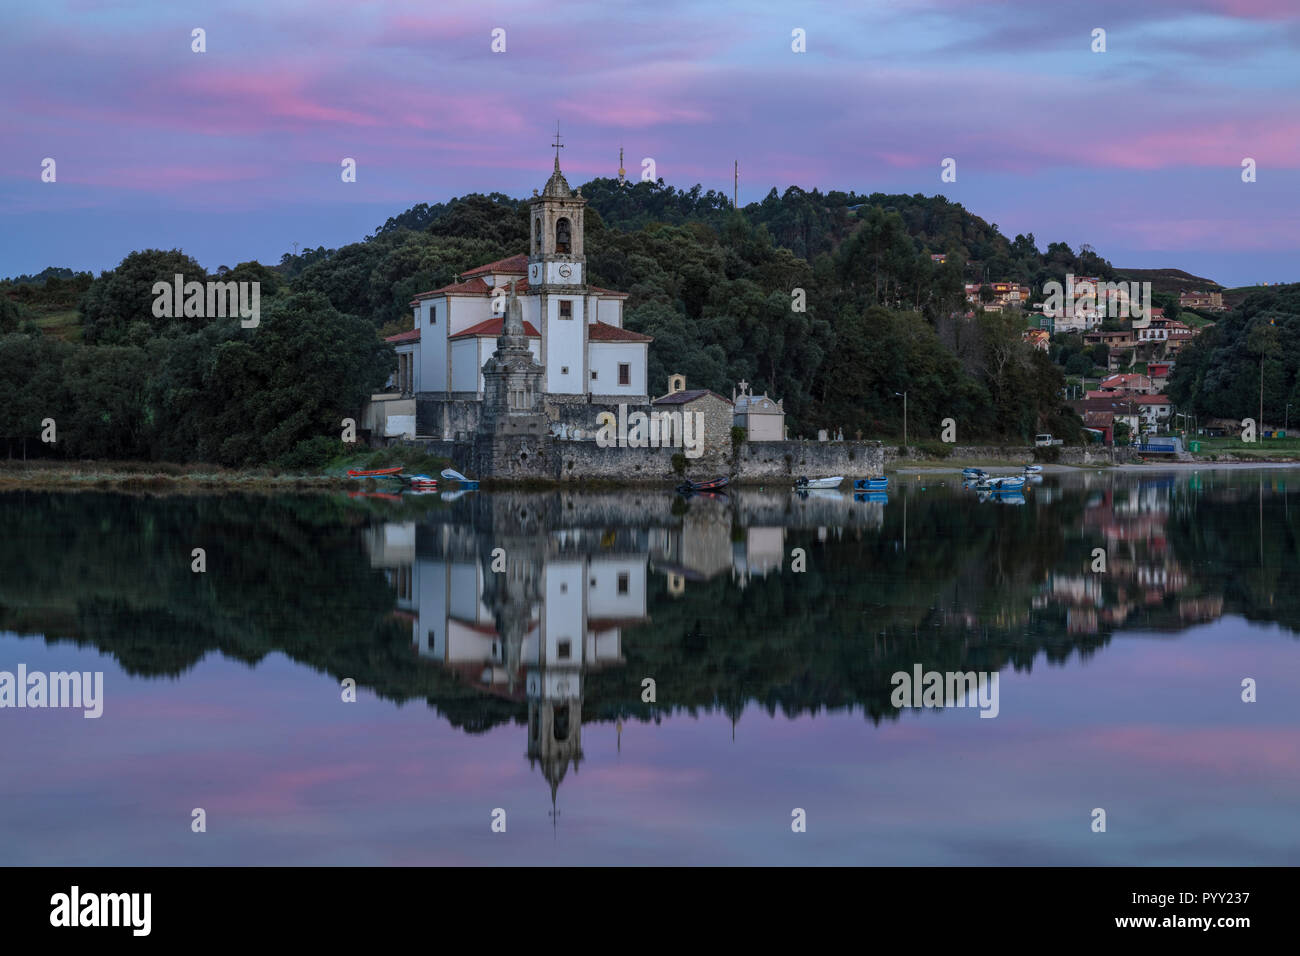 Niembru, Oviedo, Asturias, Spain, Europe - Stock Image